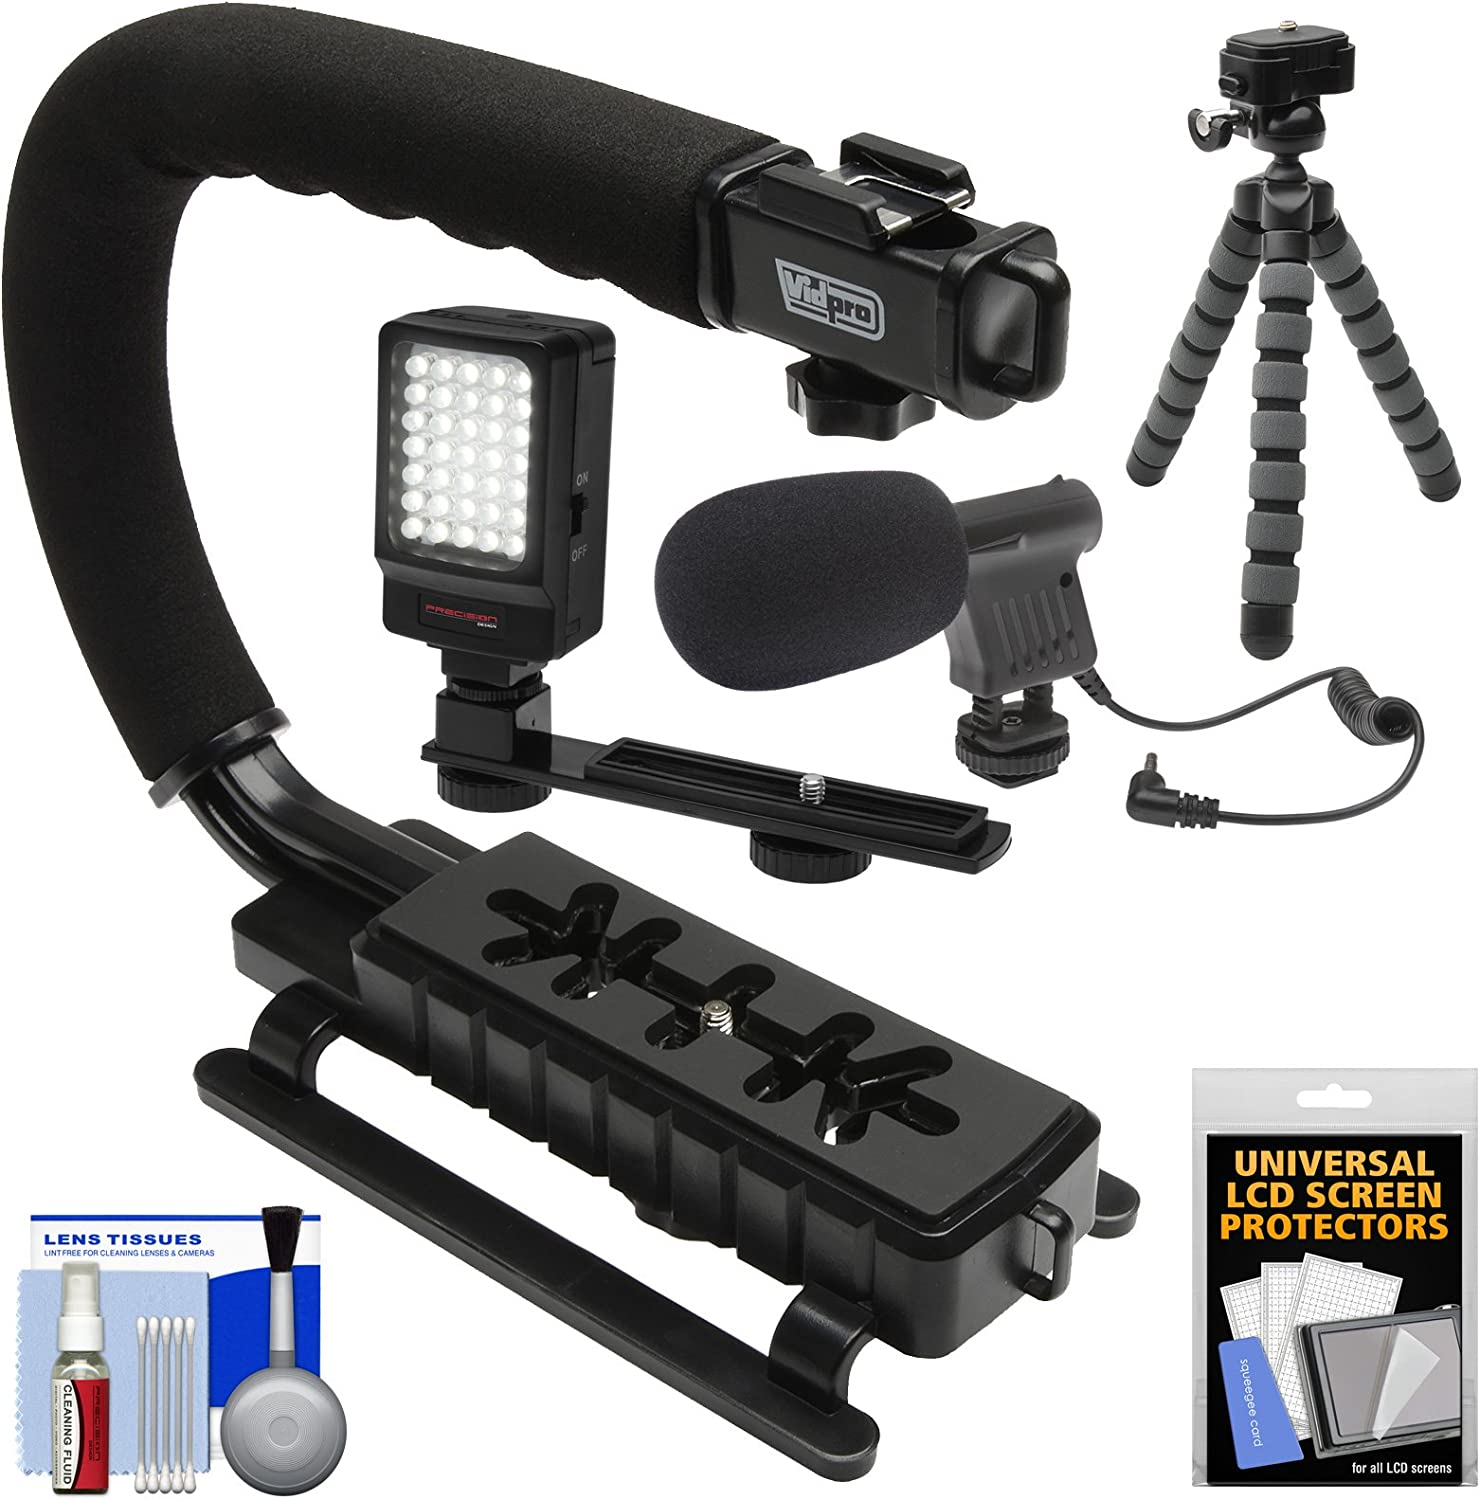 Nikon D2X Vertical Shoe Mount Stabilizer Handle Pro Video Stabilizing Handle Grip for